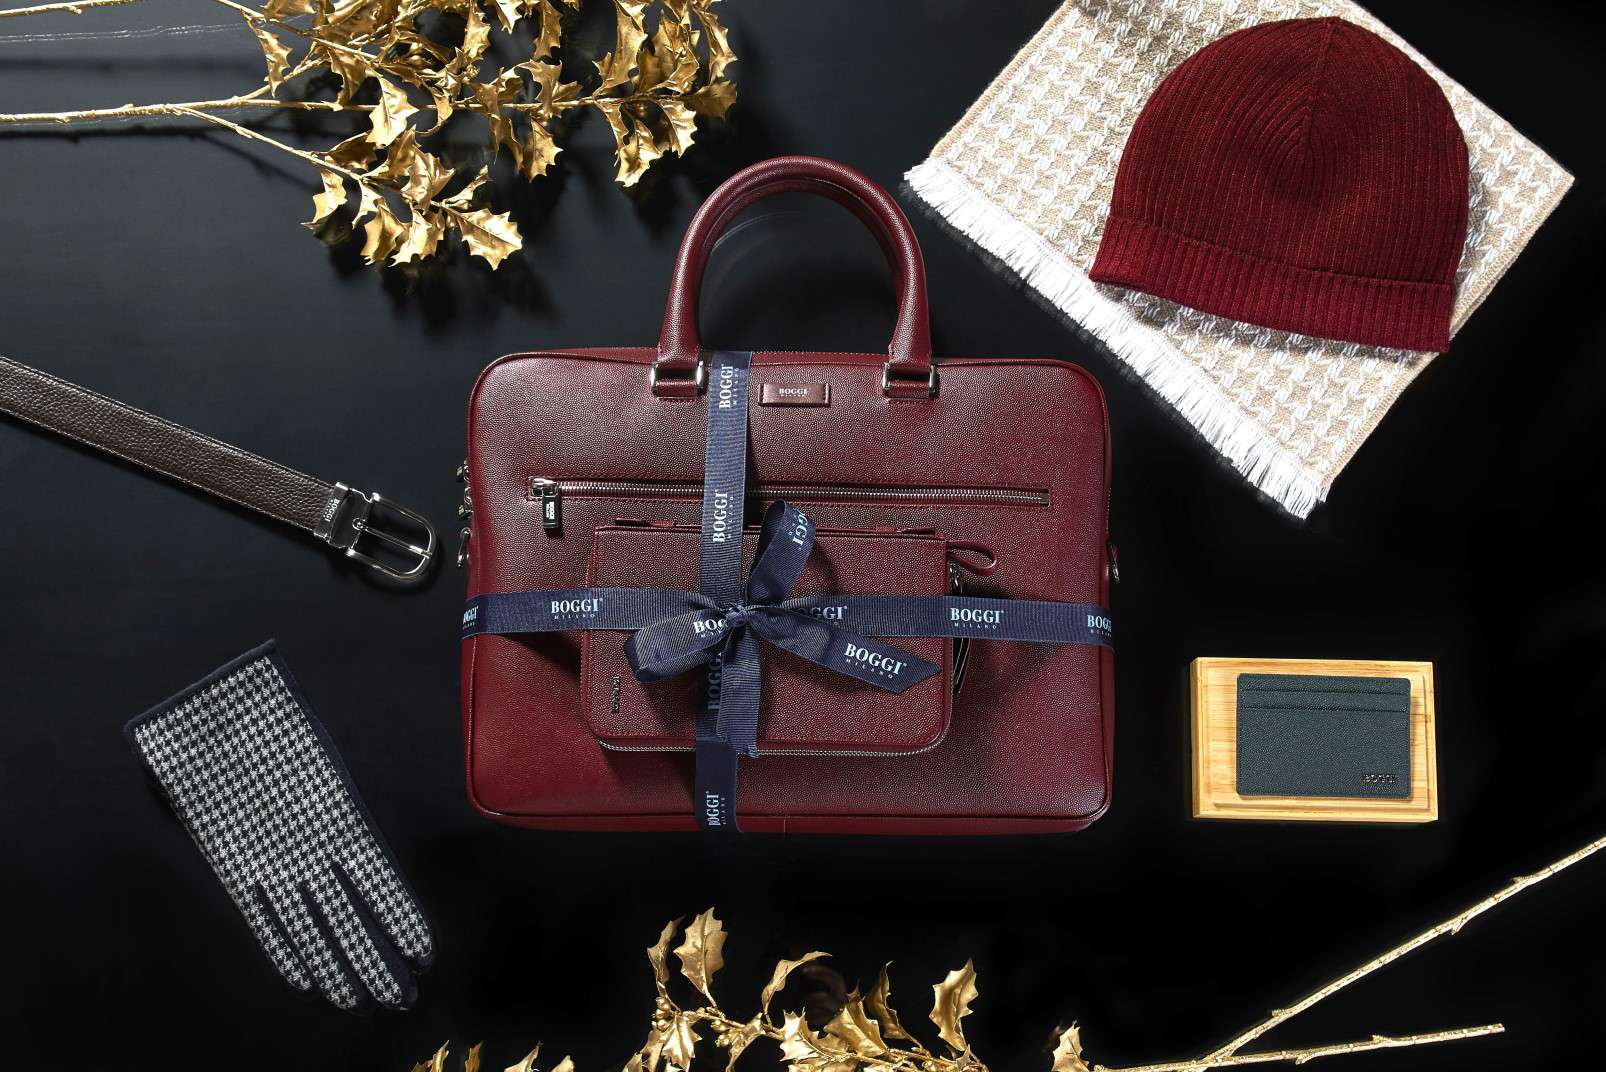 Boggi Milano gifts for a Gentleman - case, organizer, hat, gloves, belt, business card holder